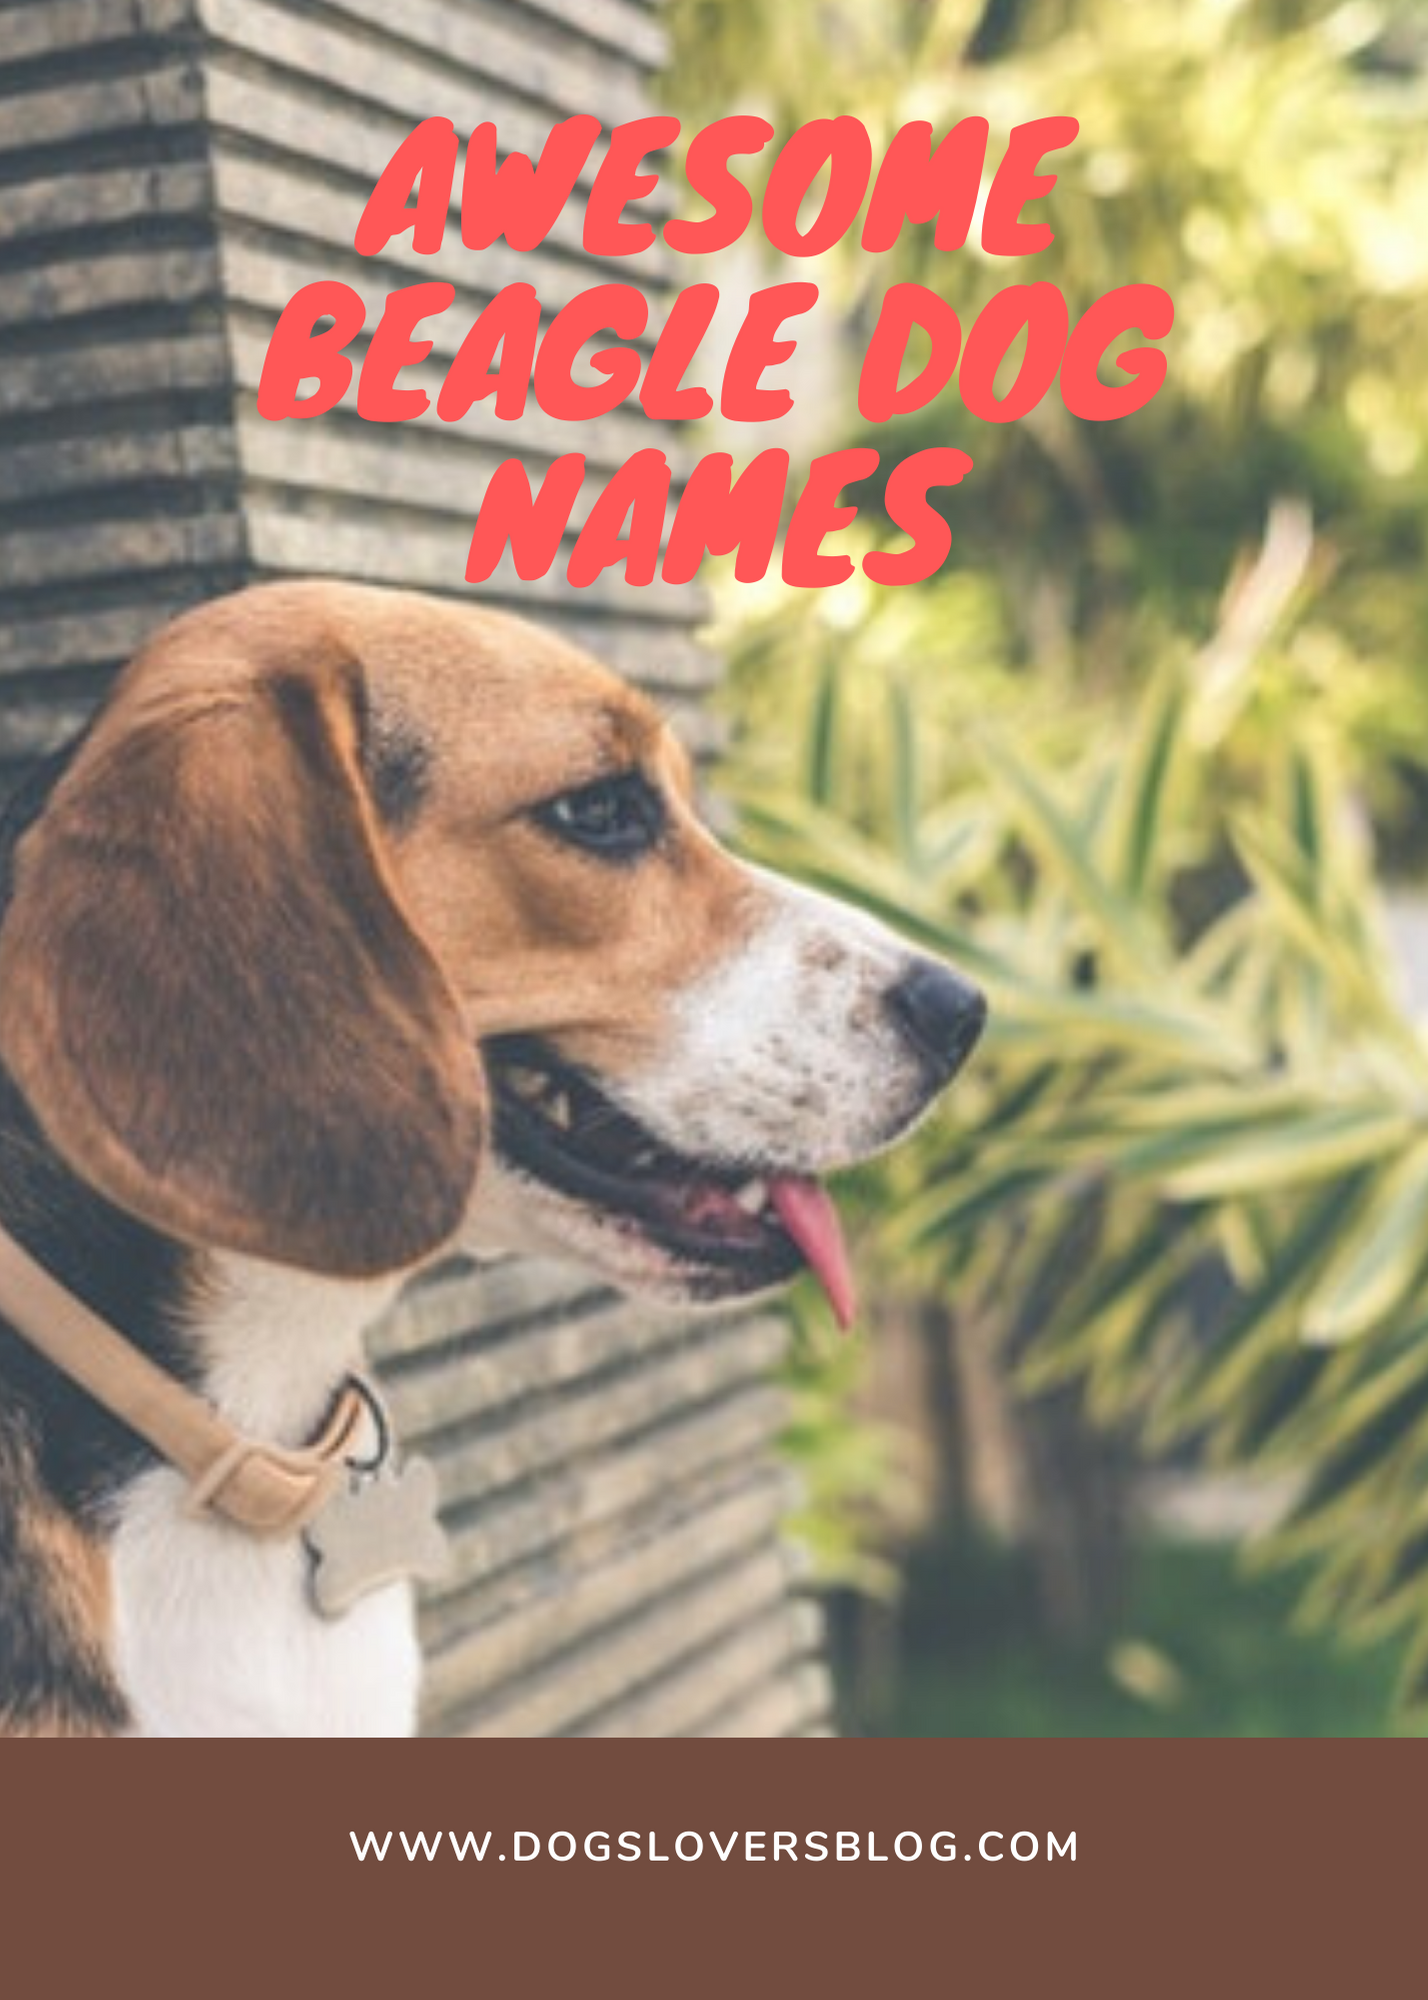 Awesome Beagle Dog Names Best Names For Beautiful Beagles In 2020 Dog Names Beagle Dog Dogs